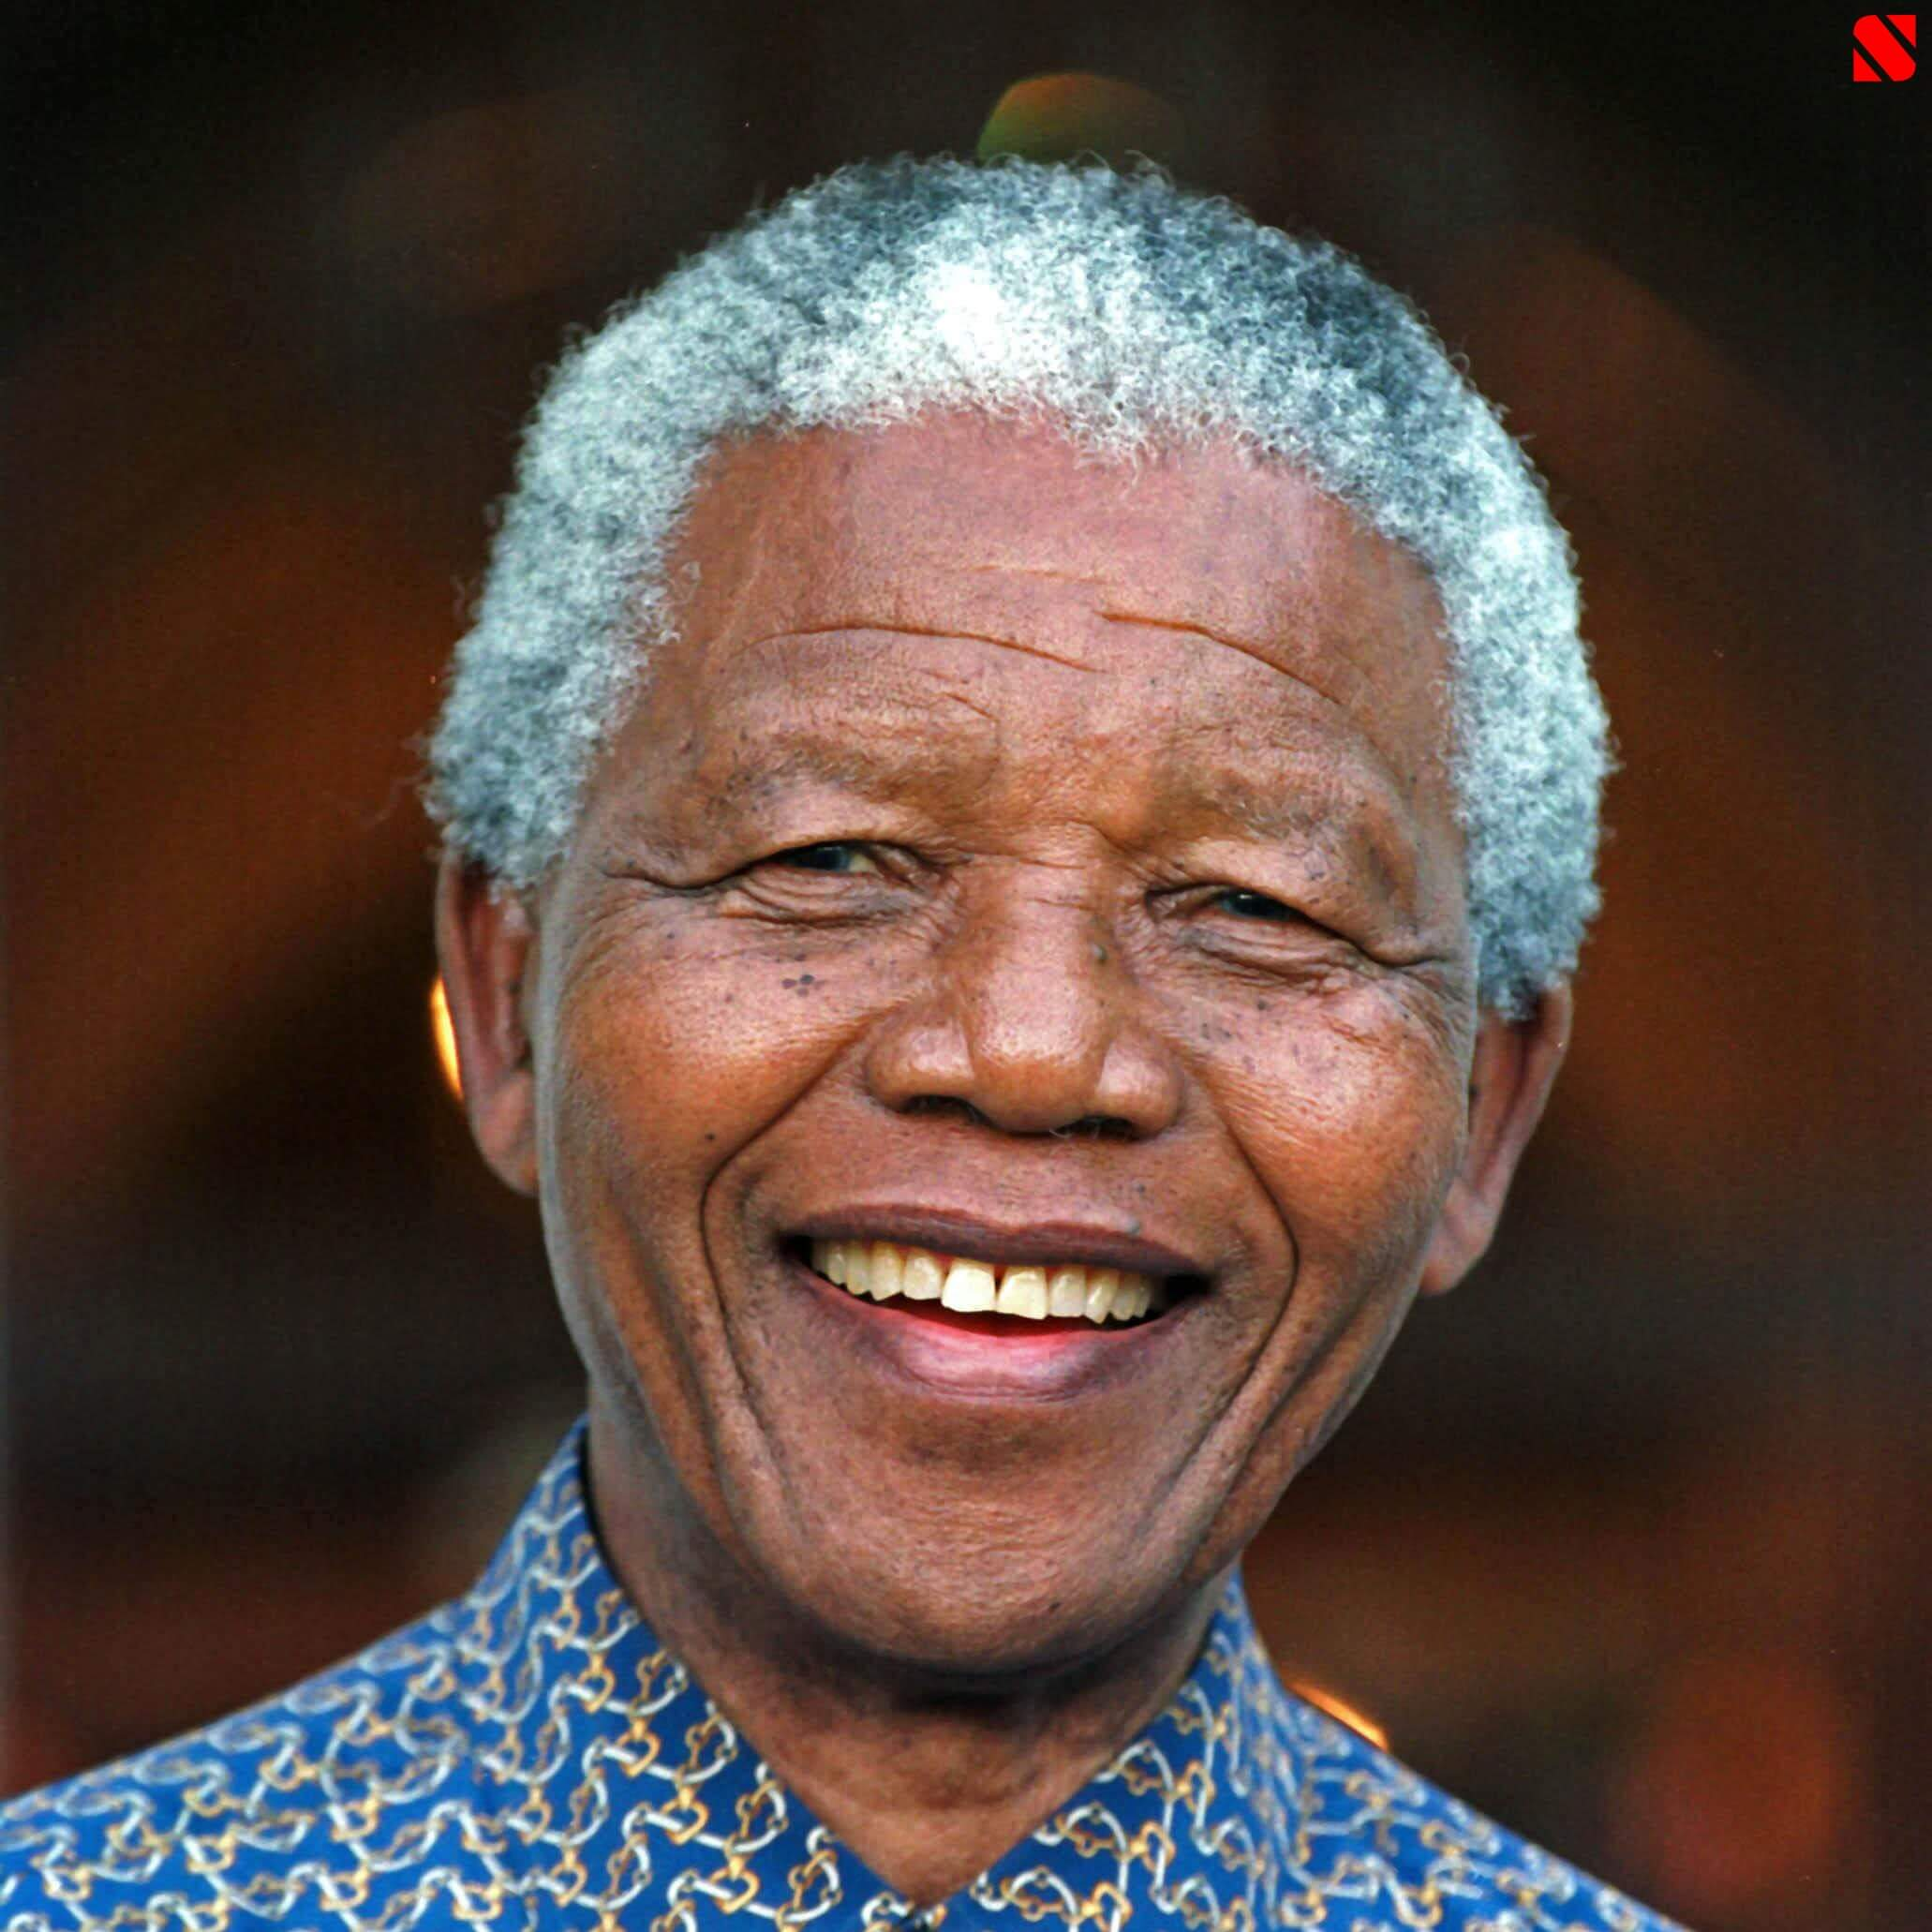 short essay nelson mandela Here is essay on nelson mandela in 250 words, लेख एसेज, anuched, short paragraphs, pdf, composition, paragraph, article हिंदी, some lines on nelson mandela in hindi, 10 lines on nelson mandela day in hindi, नेल्सन मंडेला पर हिंदी निबंध, short essay on nelson mandela in hindi font, निबन्ध (nibandh.